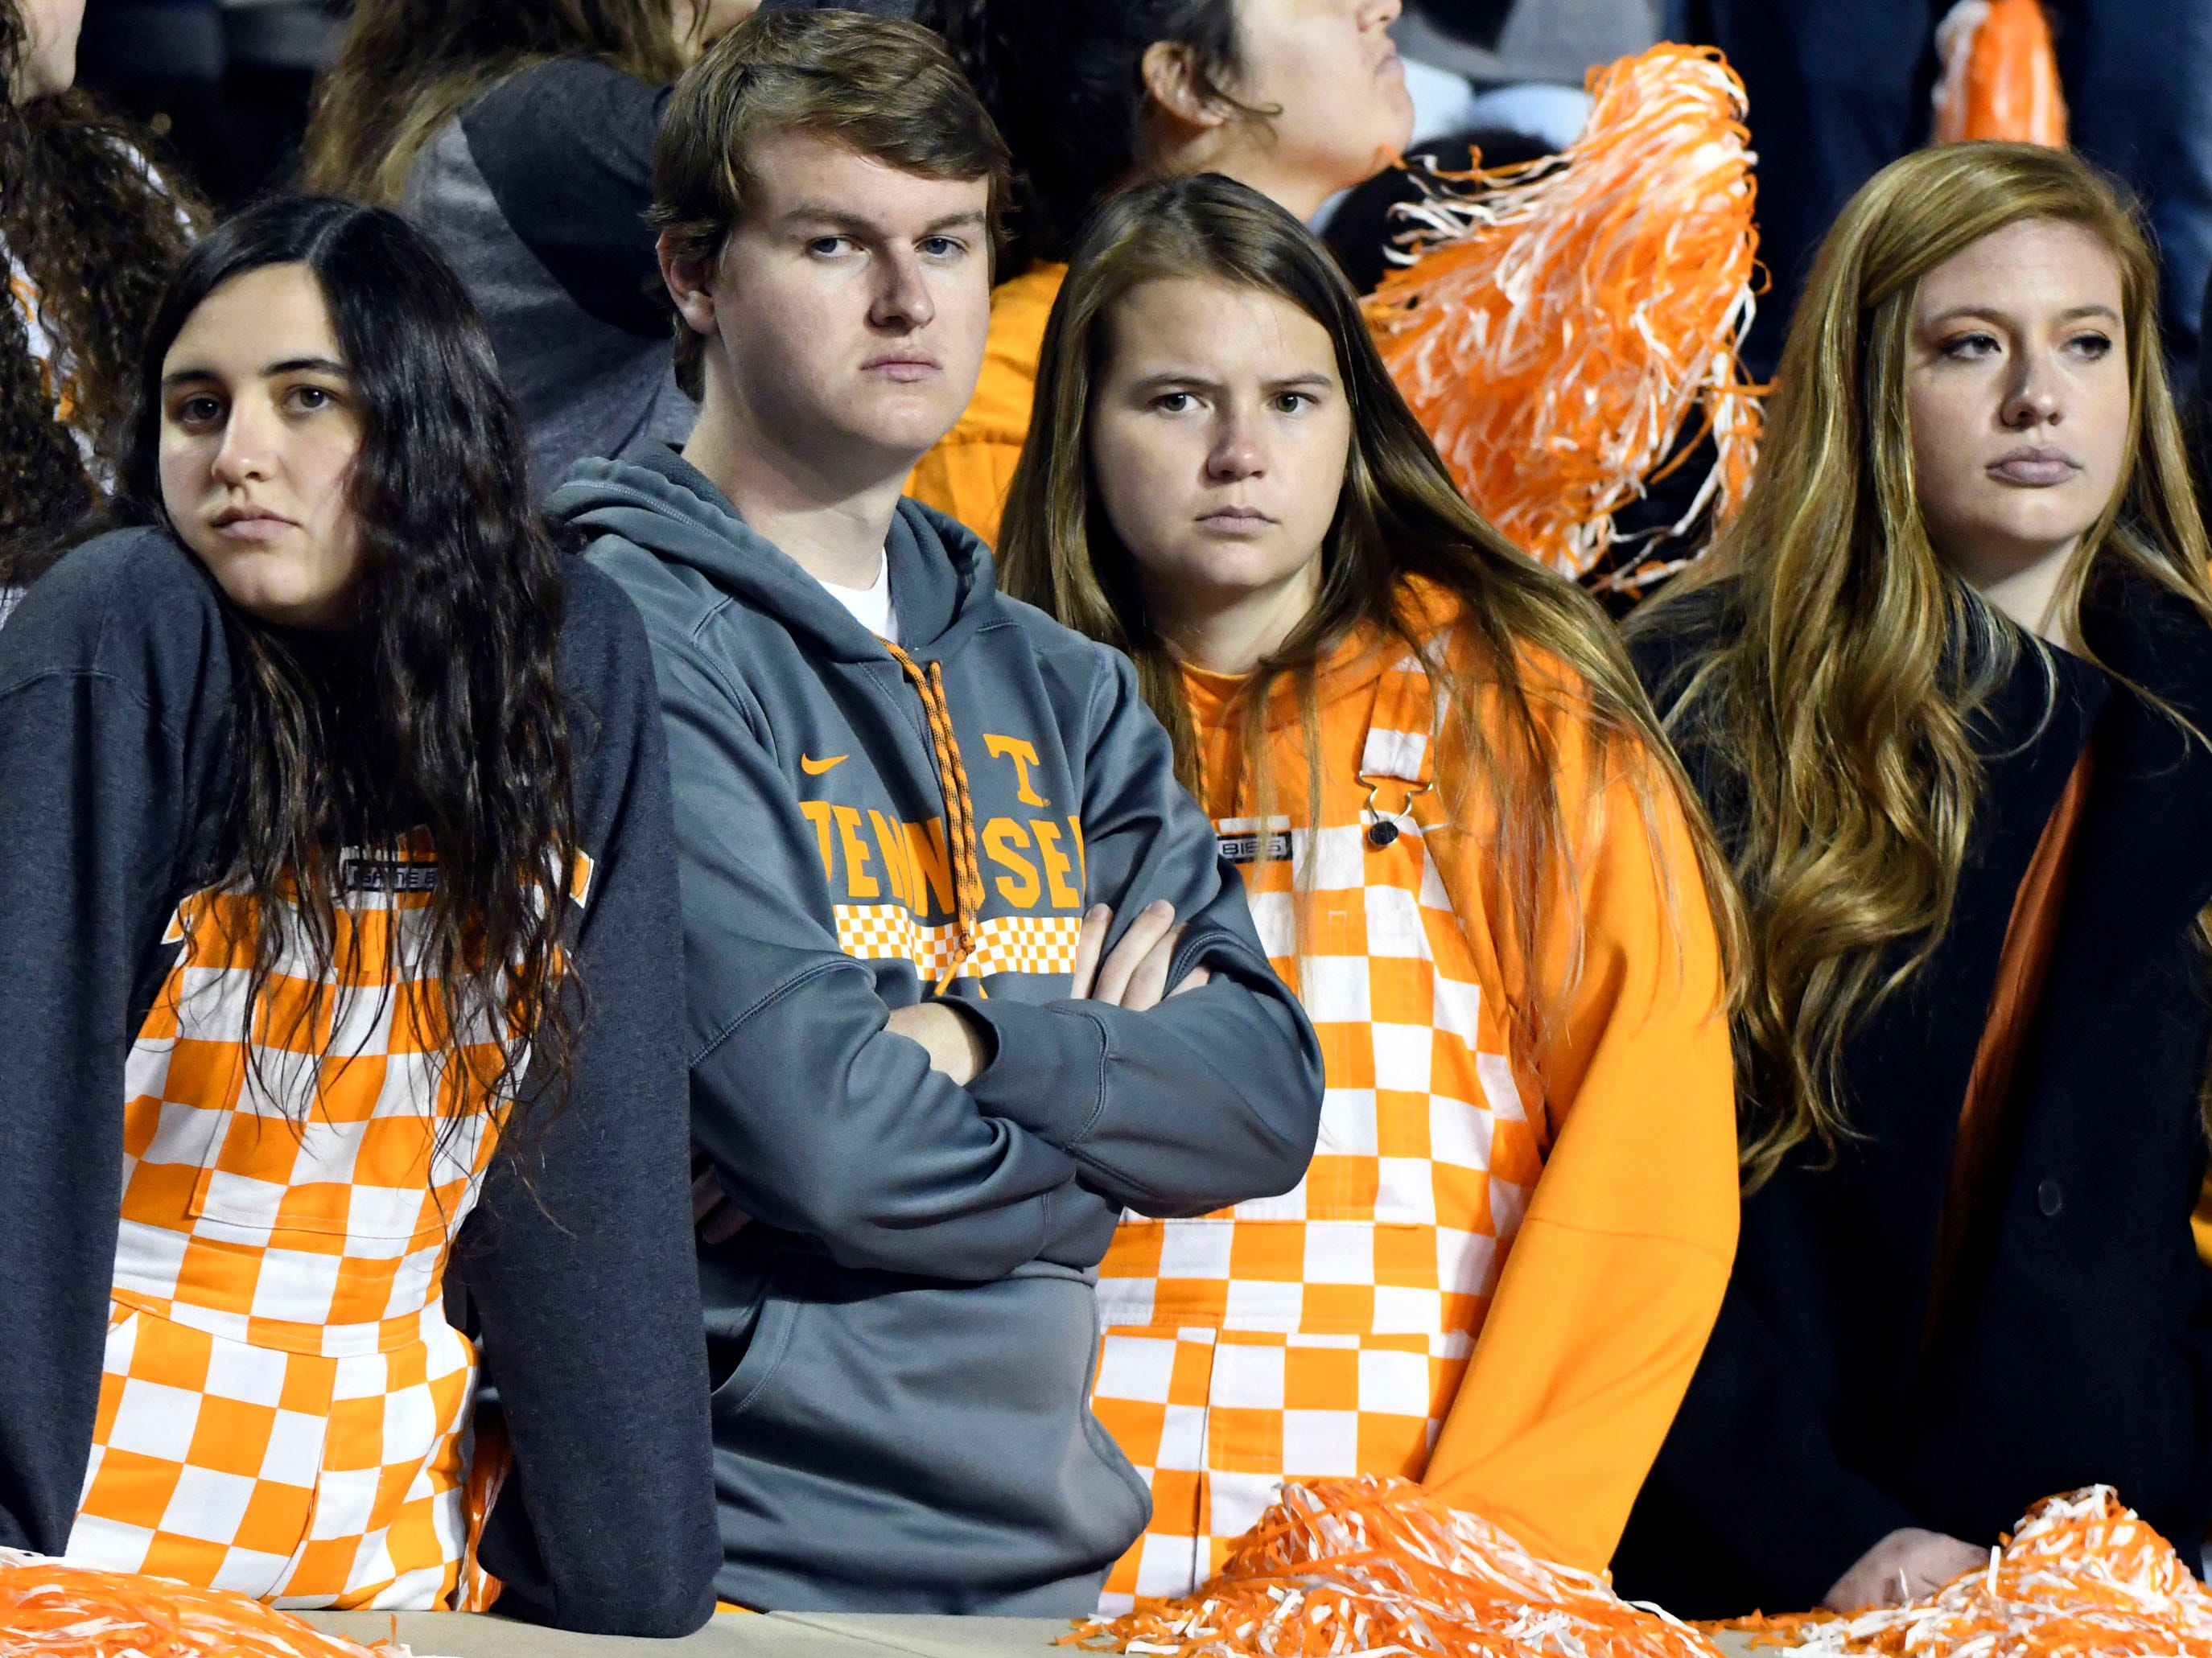 Tennessee fans show their displeasure in the final quarter of the game against Missouri on Saturday, November 17, 2018.